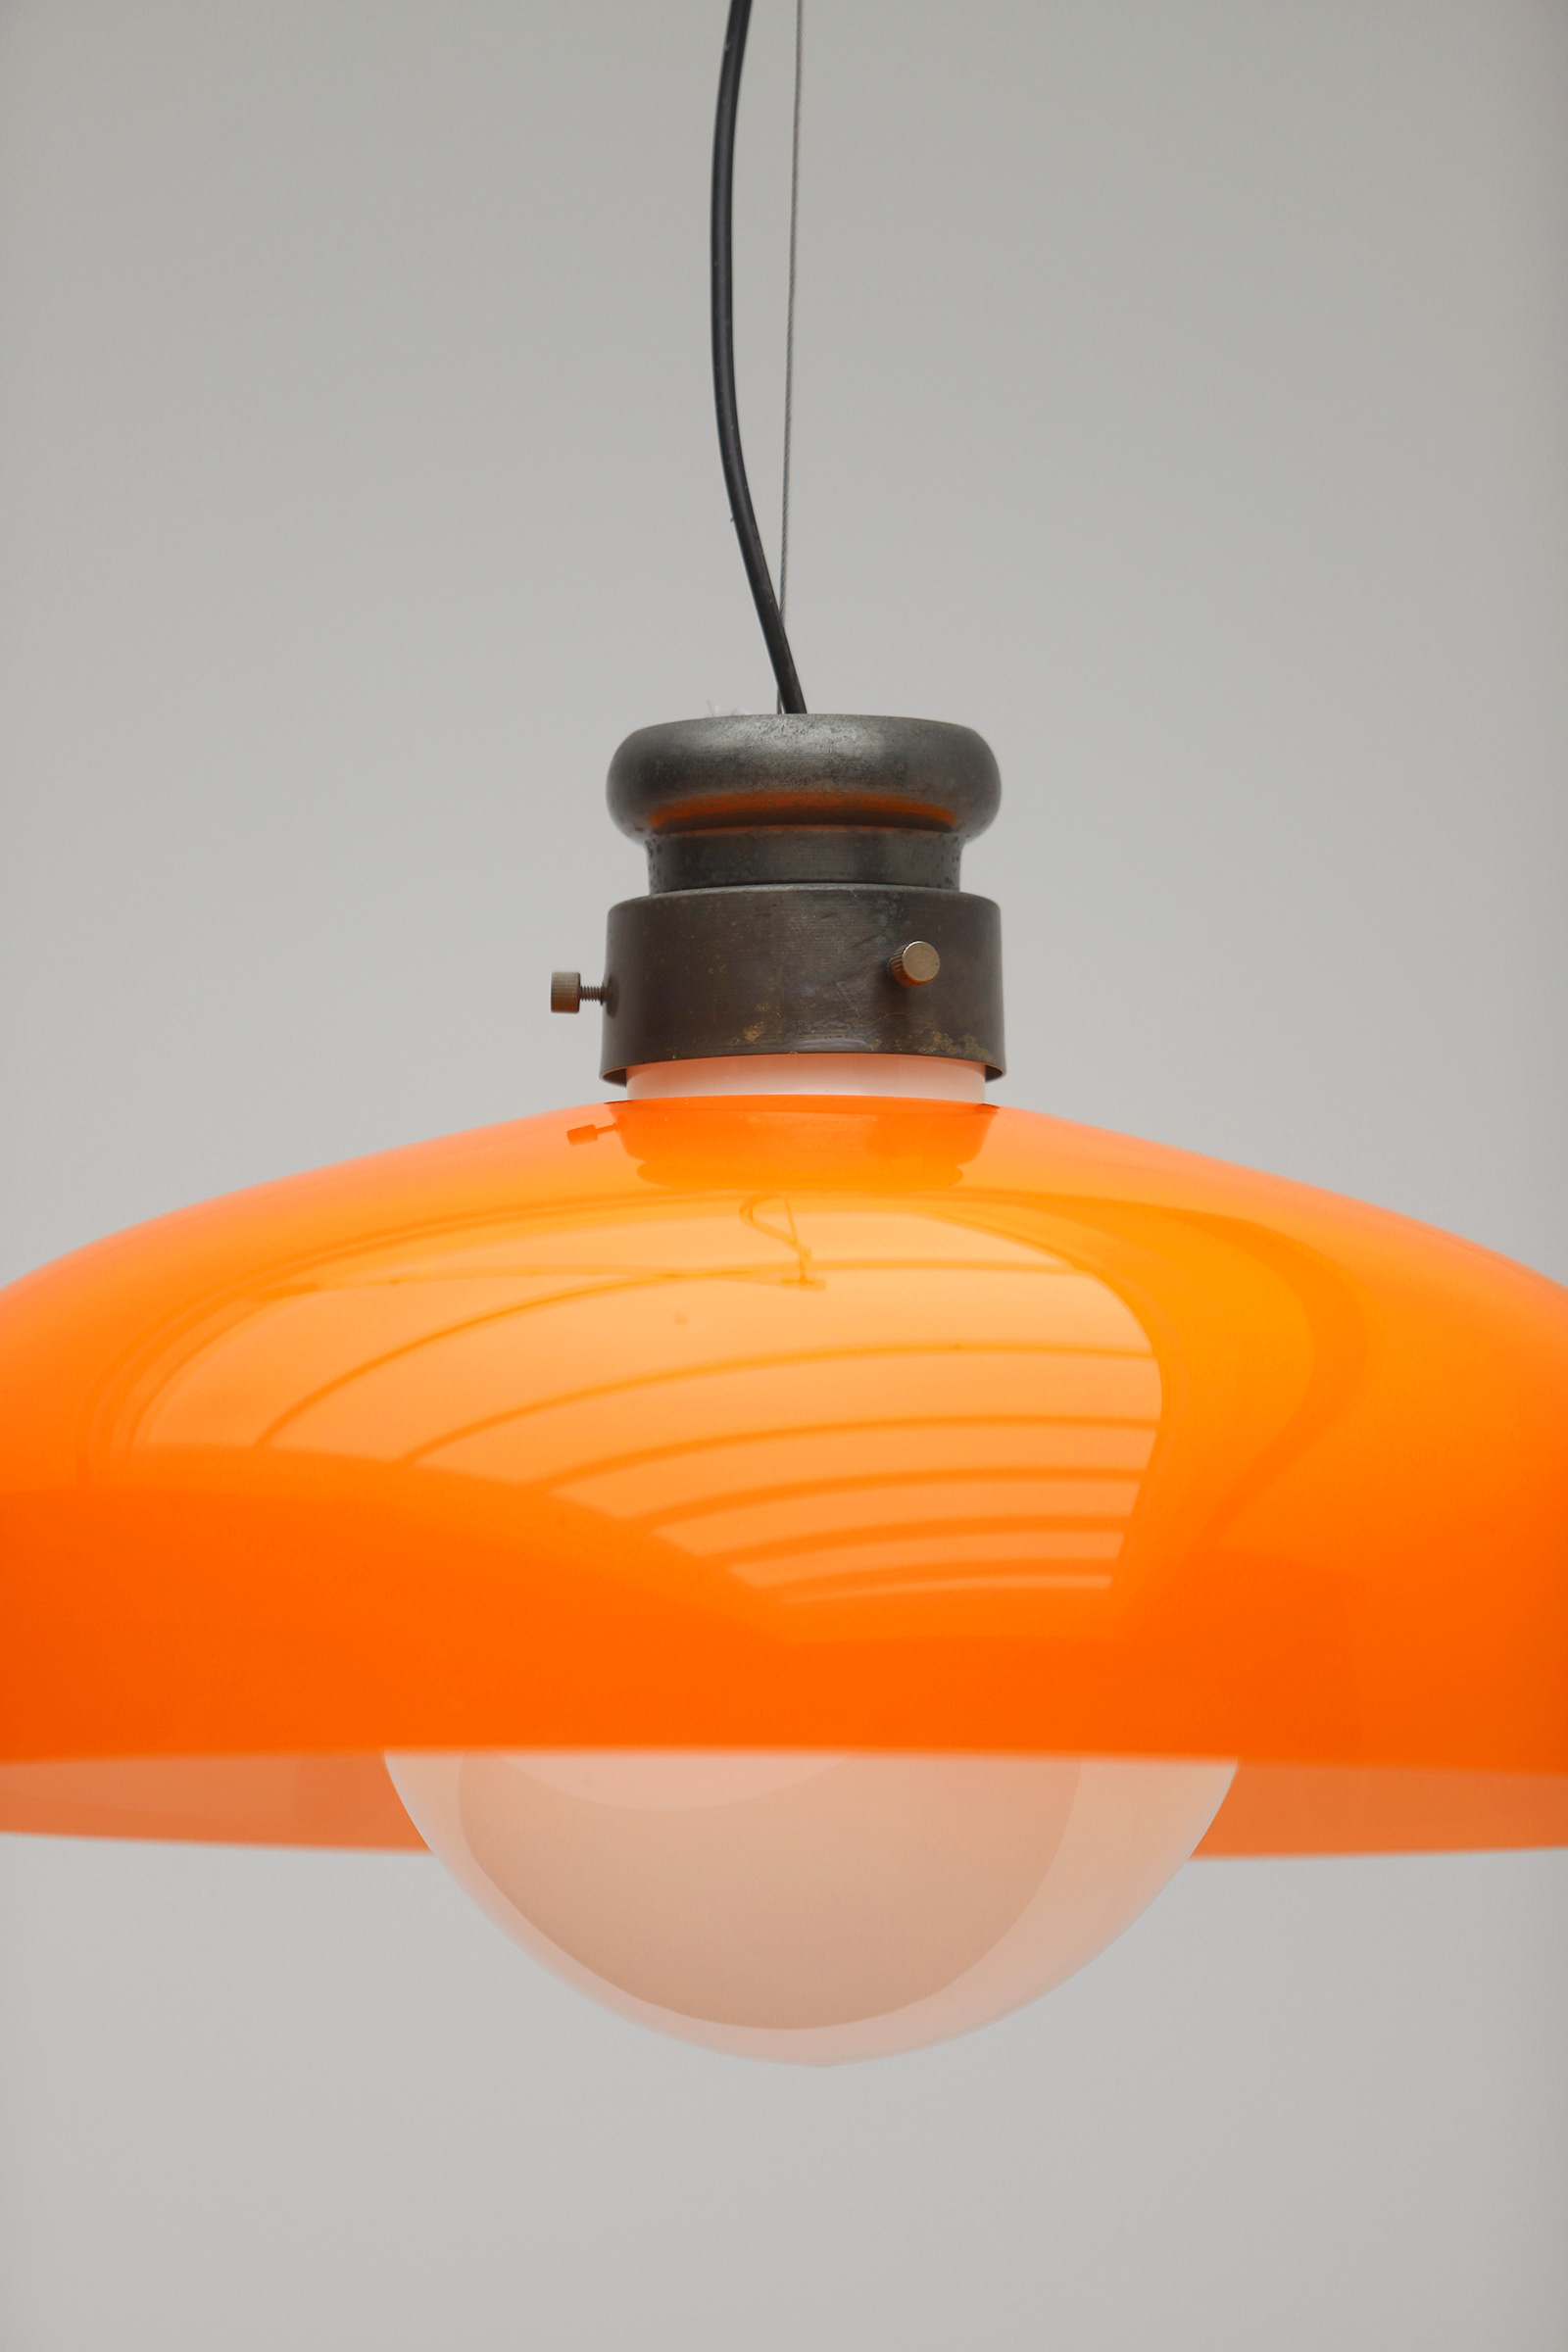 Pendant Lamp by Alessandro Pianon for Vistosiimage 4